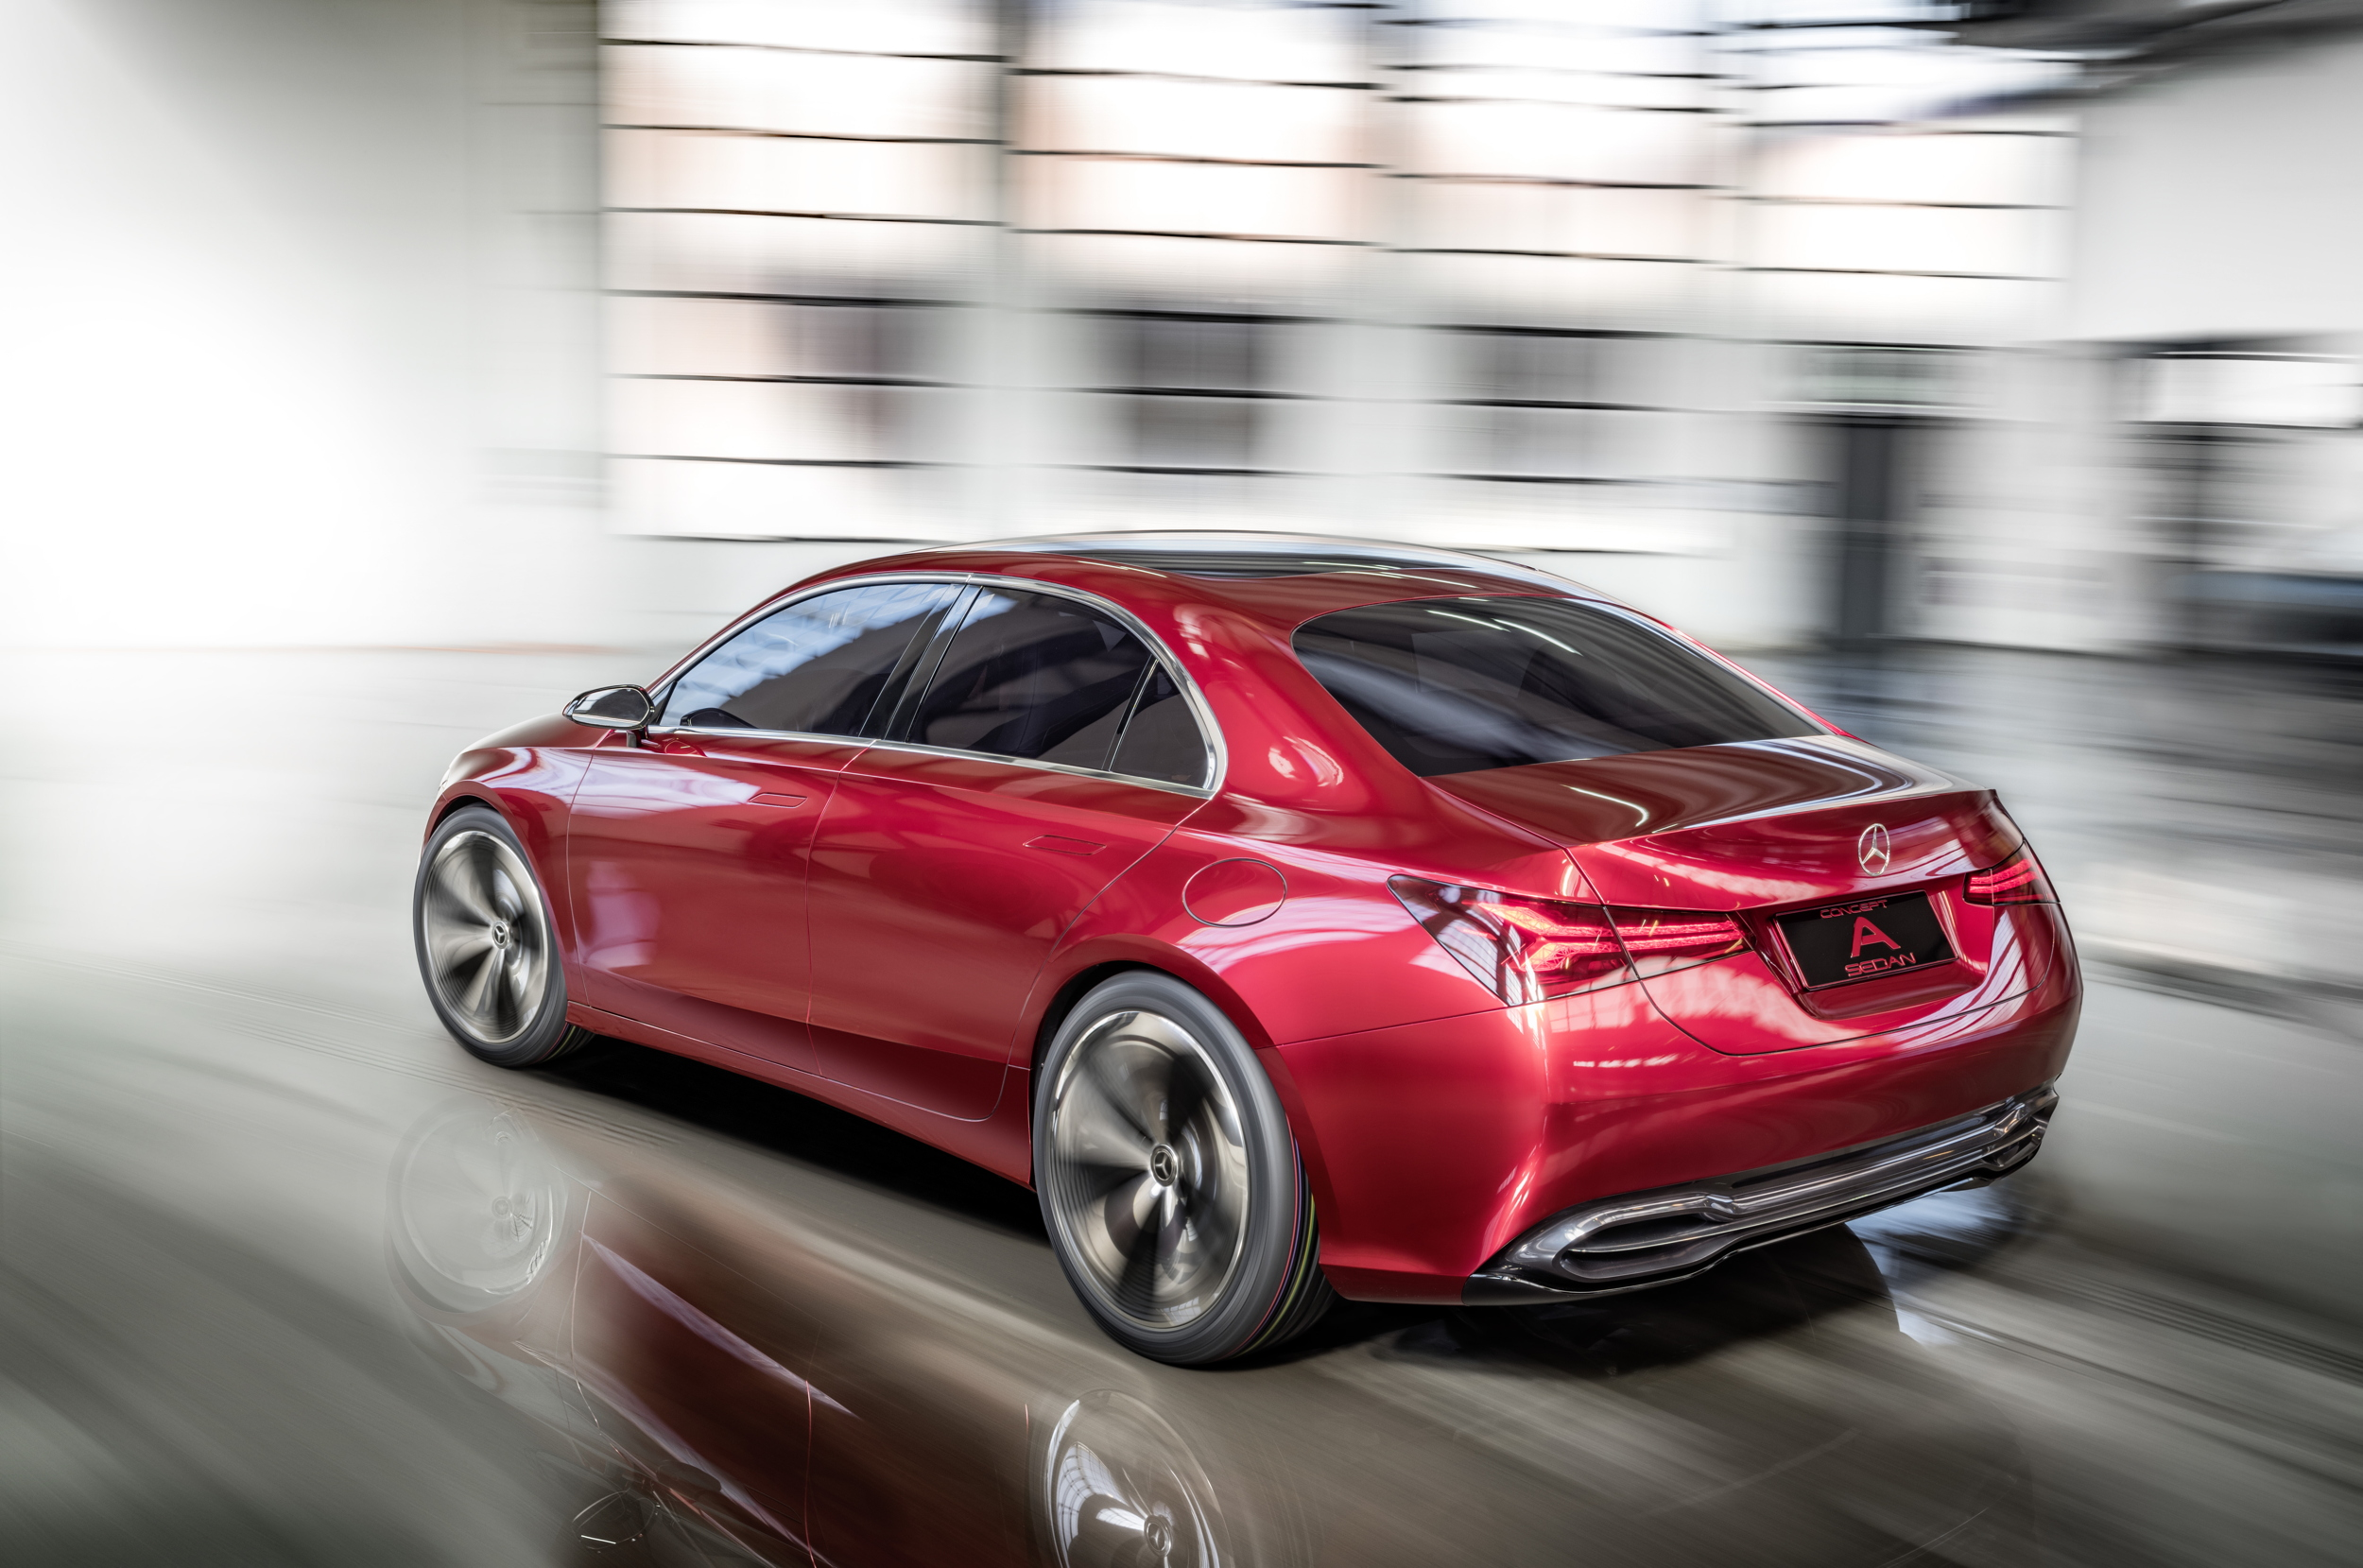 Mercedes-Benz Concept A Sedan rear moving